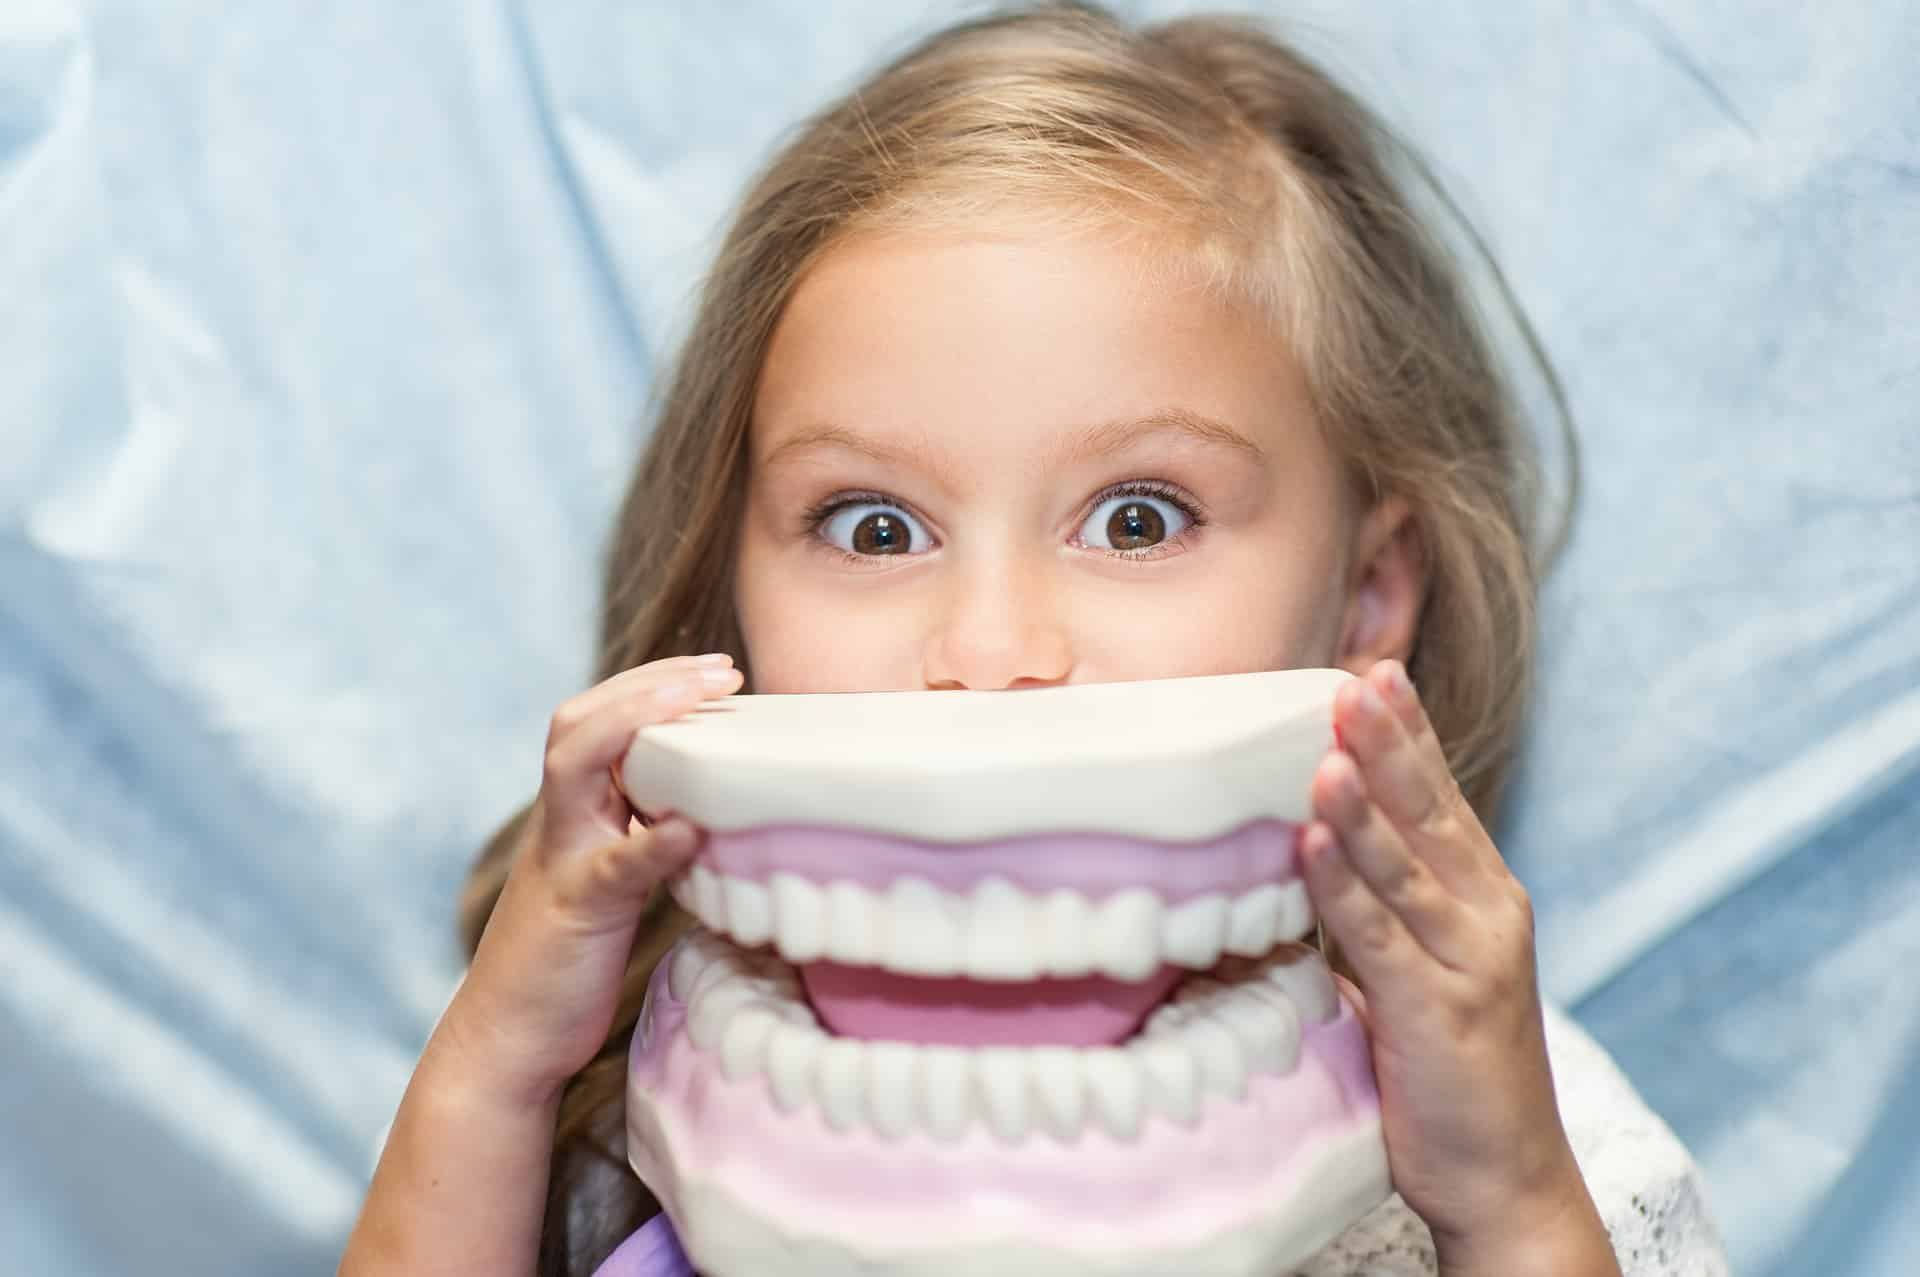 orthodontiste enfant souriante